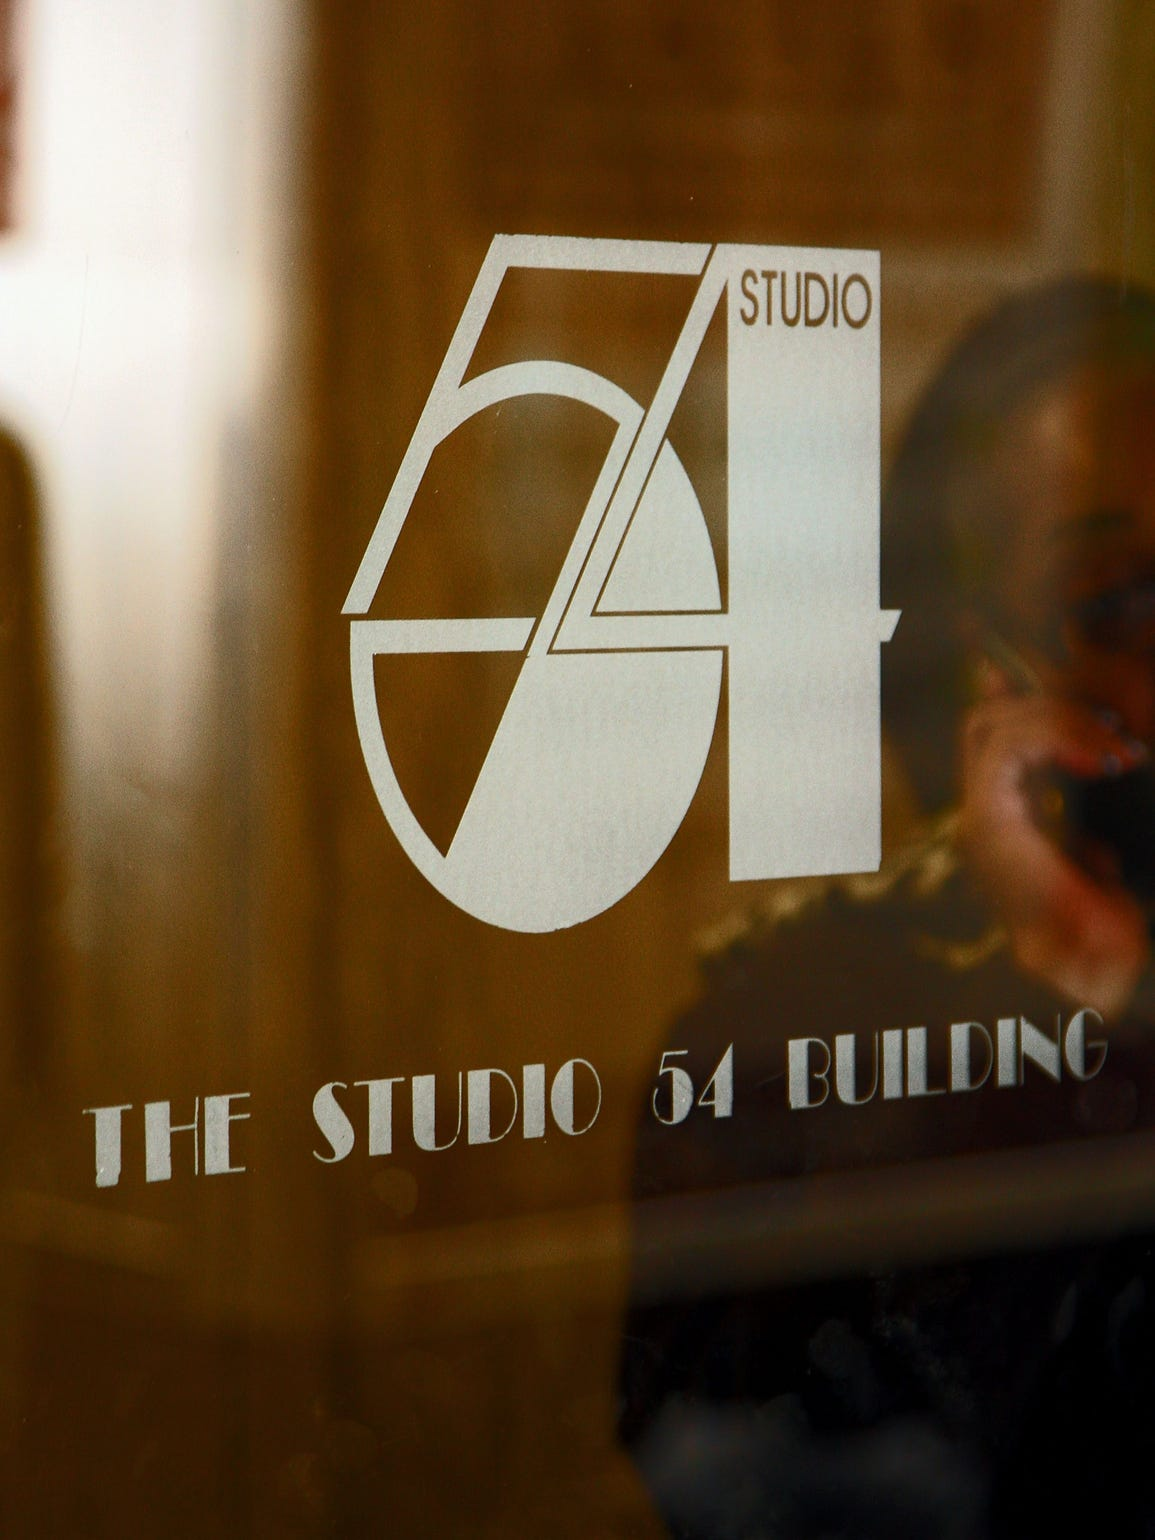 Studio 54 was a fashionable disco where Andy Warhol, Lorna Luft, Liza Minnelli and friends partied in the 1970s.